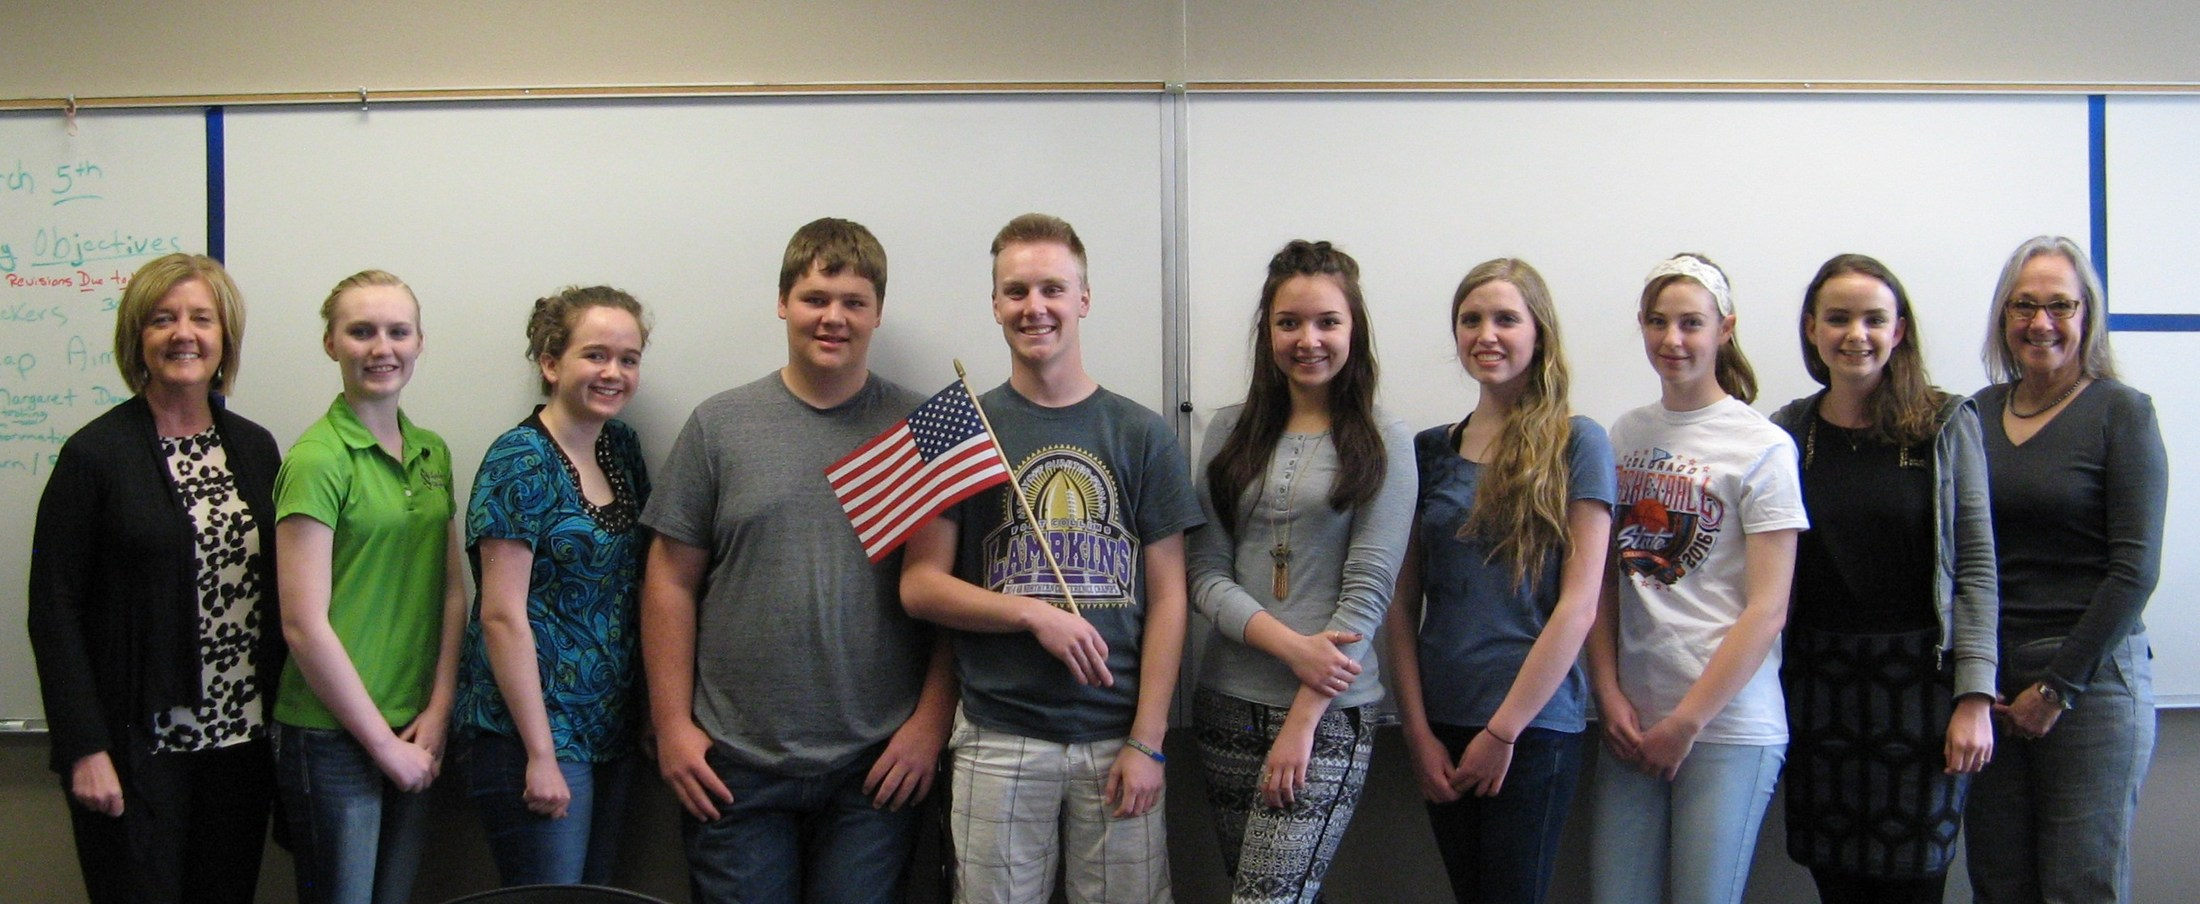 Student Council Founding Members